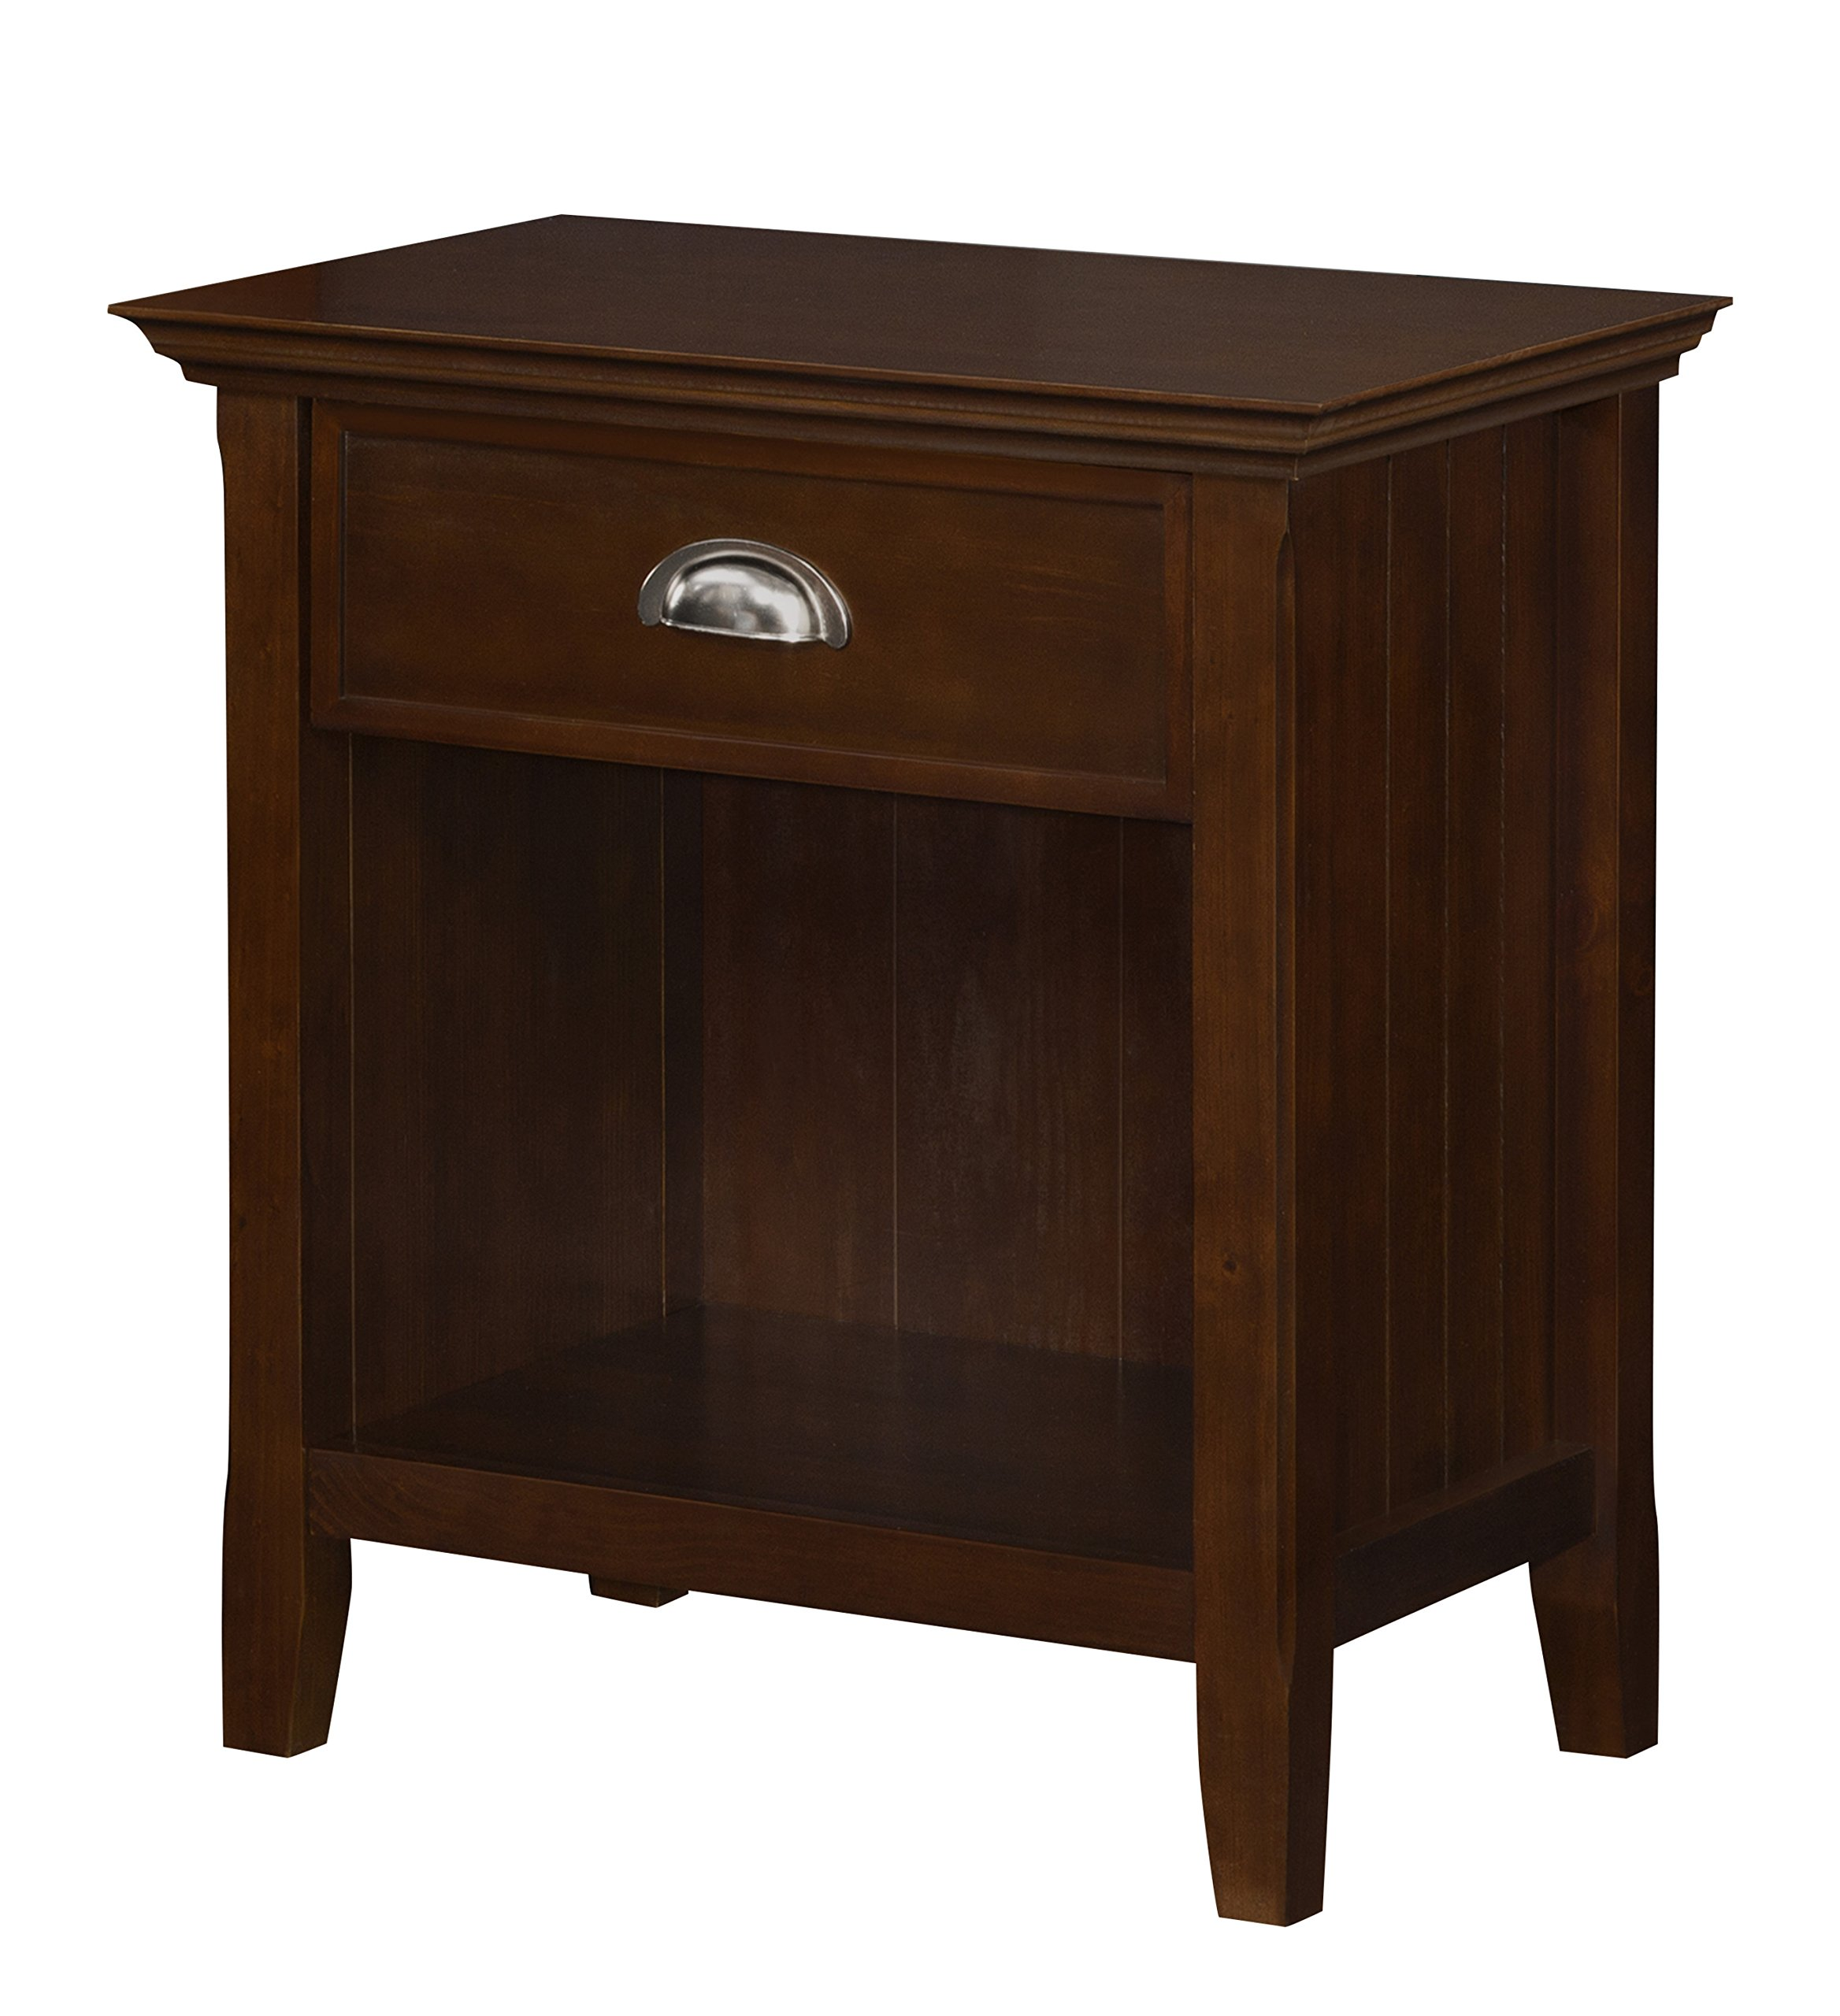 Simpli Home Acadian Solid Wood Bedside Table, Tobacco Brown, Standard